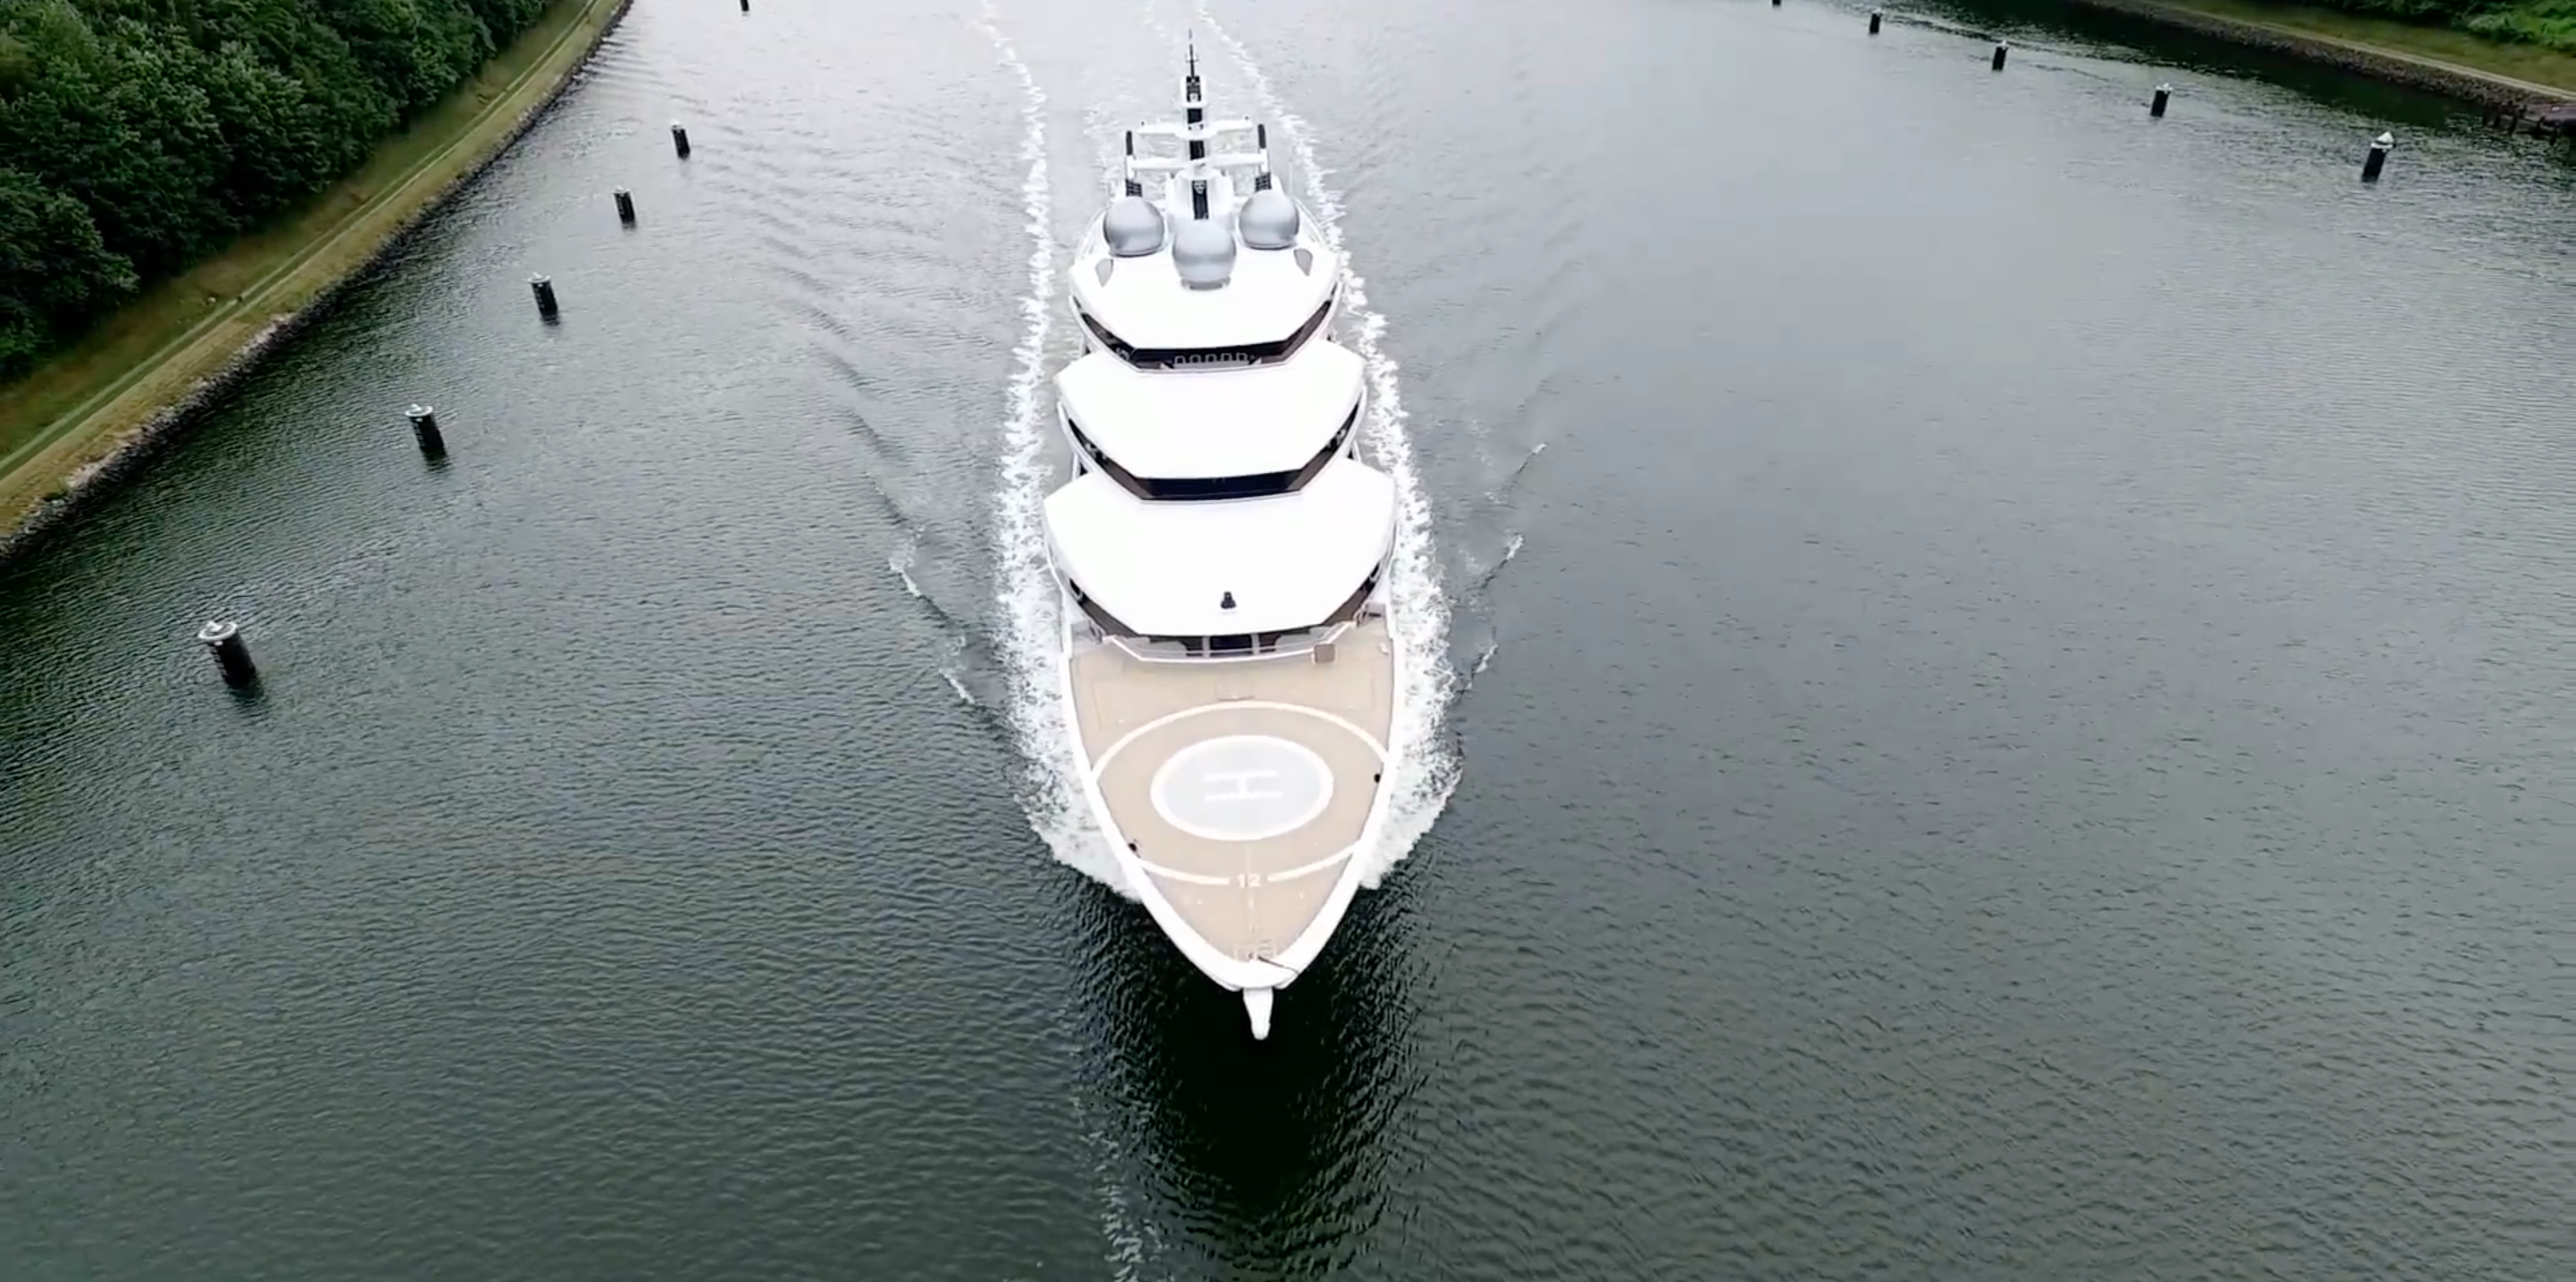 Motor yacht Amadea (ex Project Mistral). Photo credit AS-Flycam-Kiel.de:Andreas Schuster